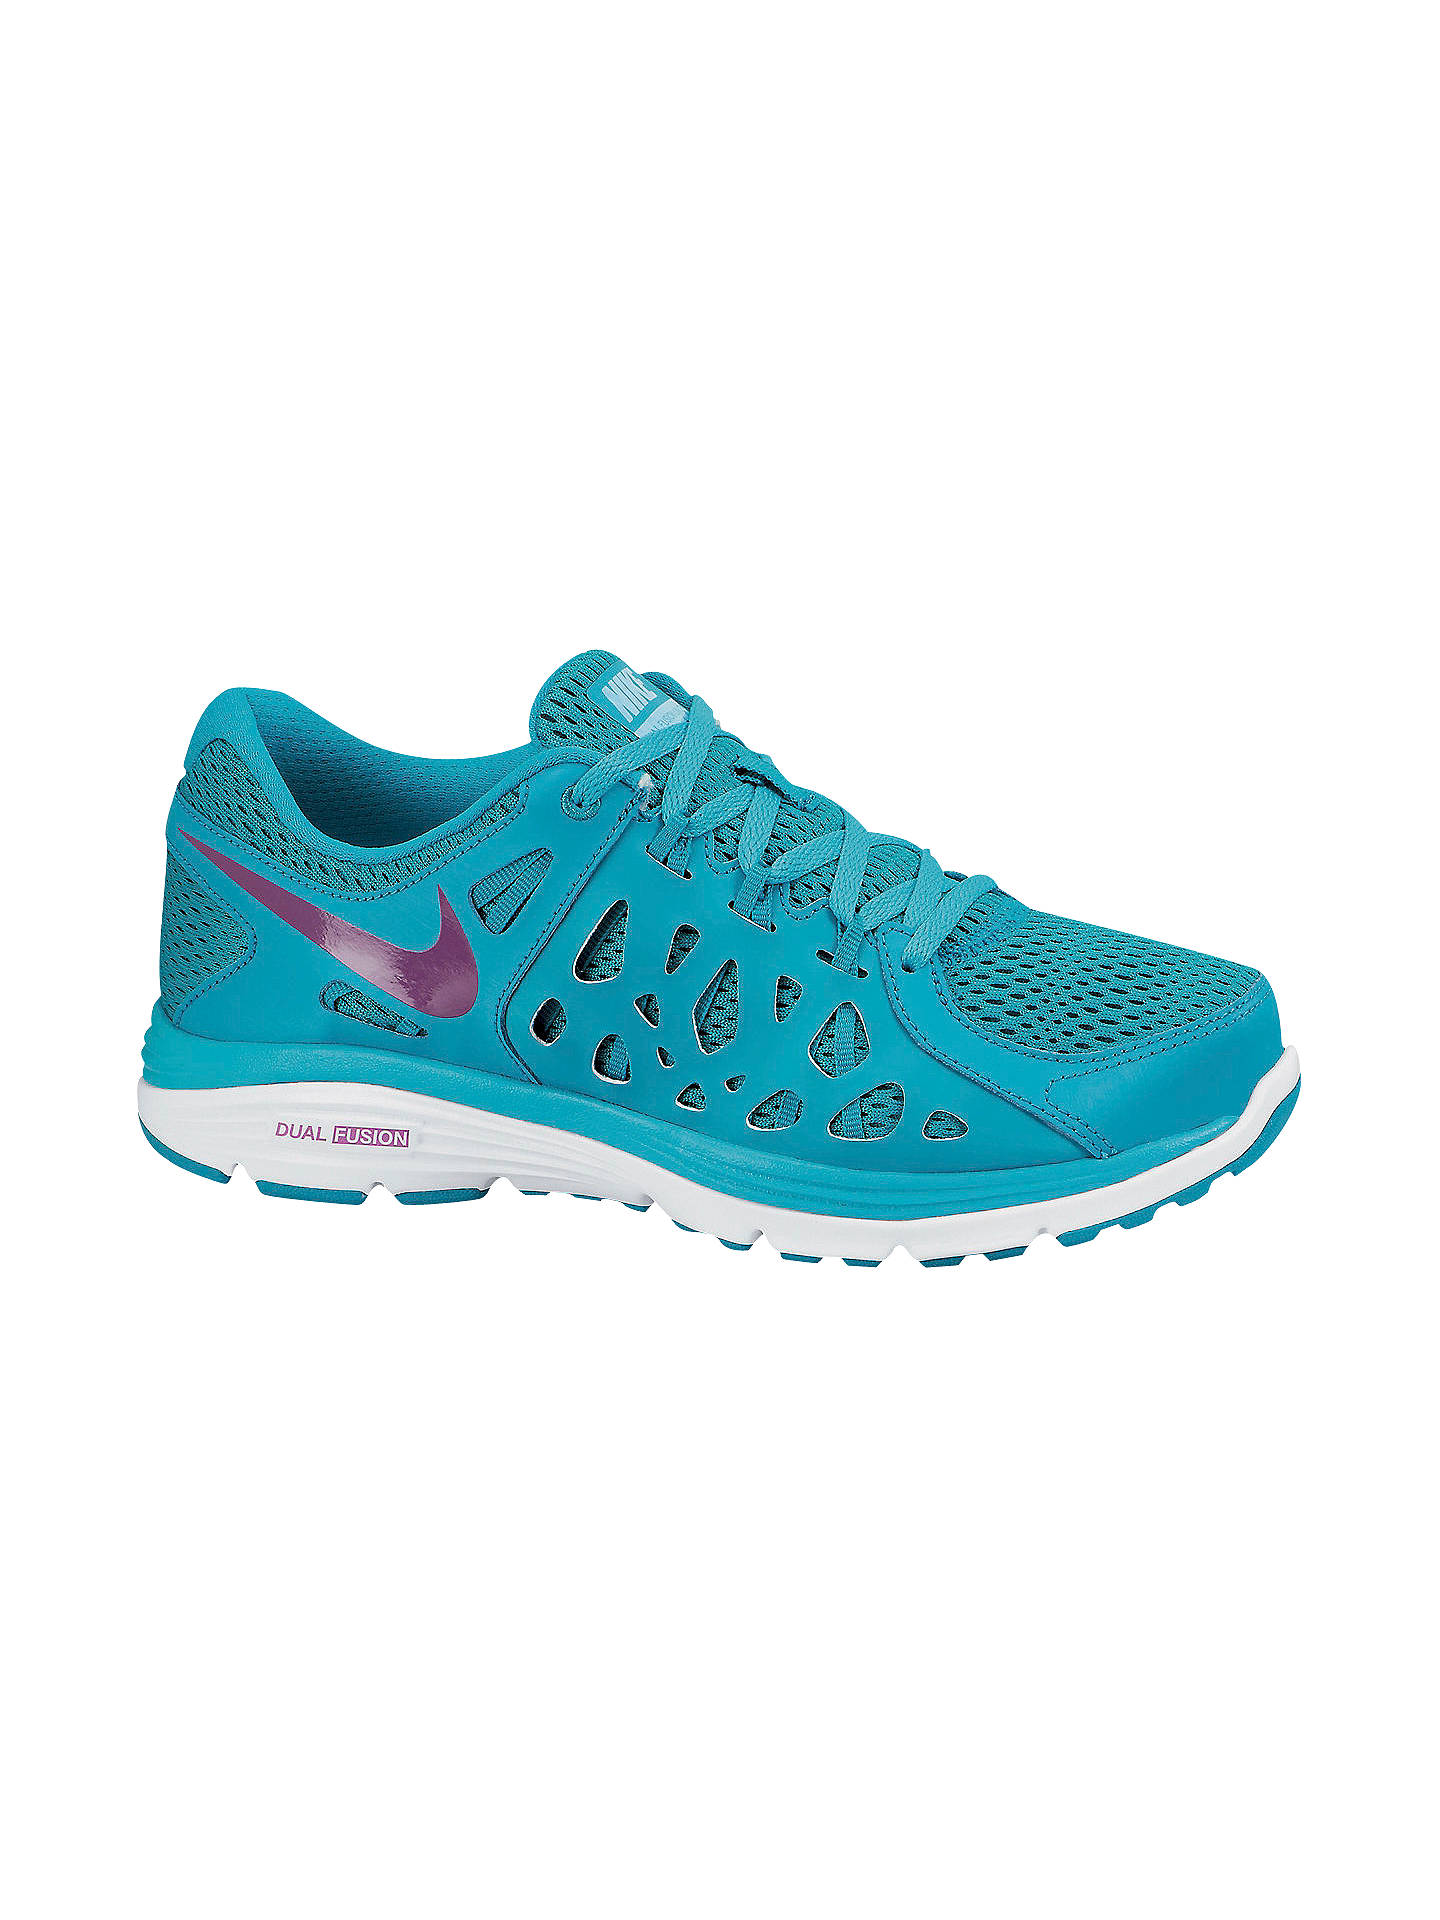 1ece3530939c6 Buy Nike Dual Fusion Run 2 Women s Running Shoes